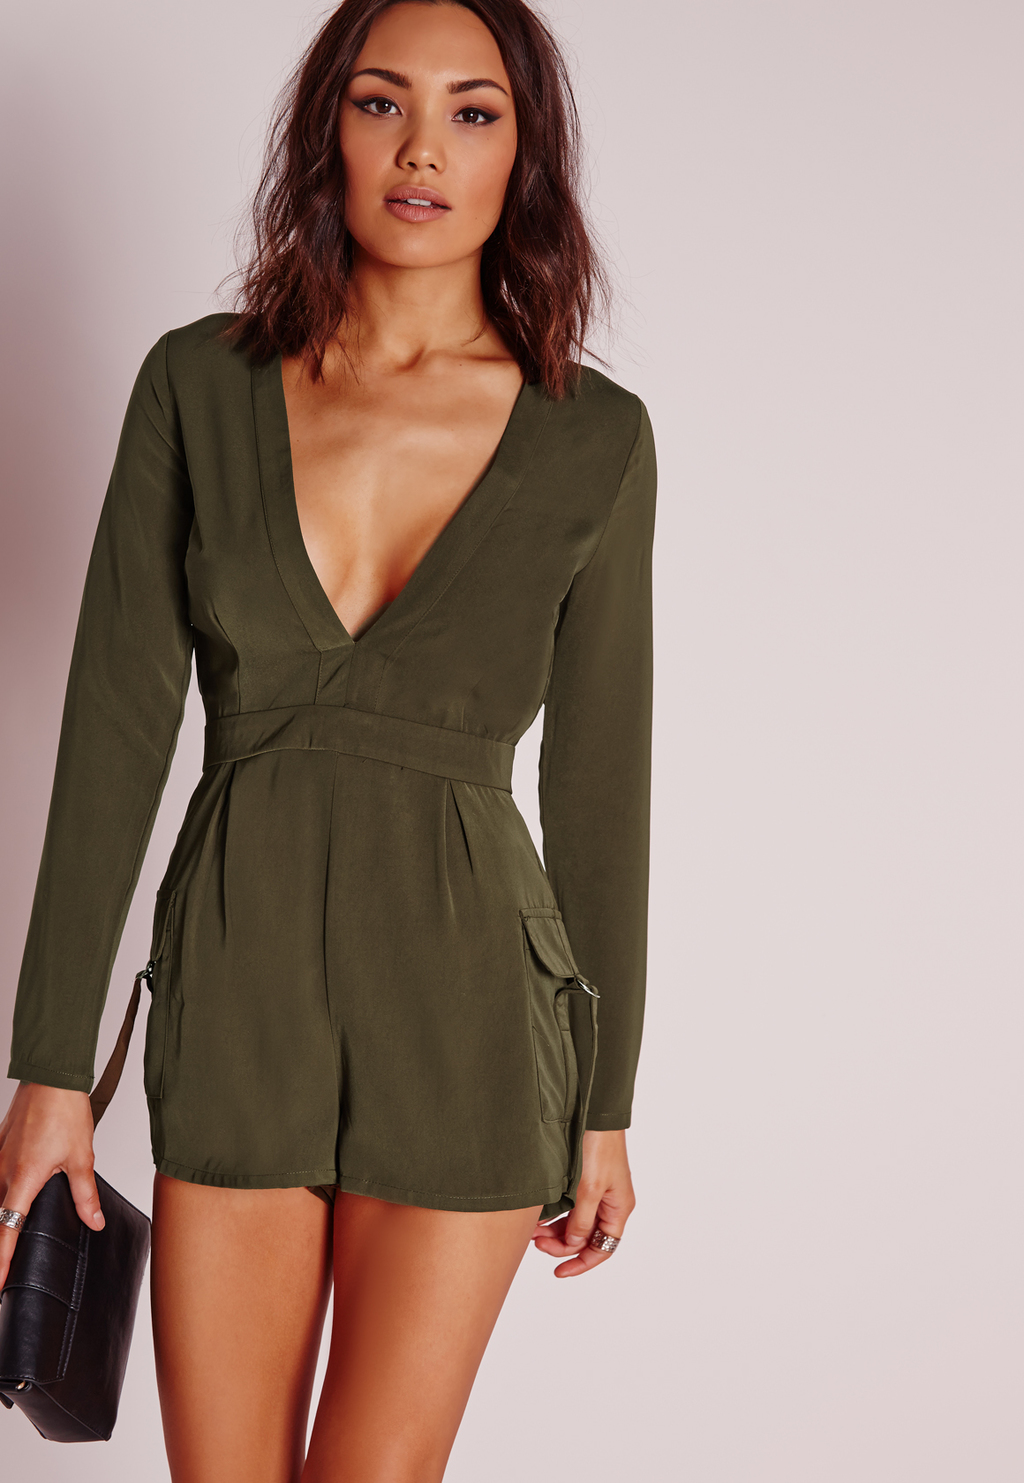 Pocket Short Plunge Playsuit Khaki, Beige - neckline: v-neck; pattern: plain; waist detail: fitted waist; length: short shorts; predominant colour: khaki; occasions: casual; fit: body skimming; fibres: polyester/polyamide - stretch; sleeve length: long sleeve; sleeve style: standard; style: playsuit; pattern type: fabric; texture group: woven light midweight; season: s/s 2016; wardrobe: highlight